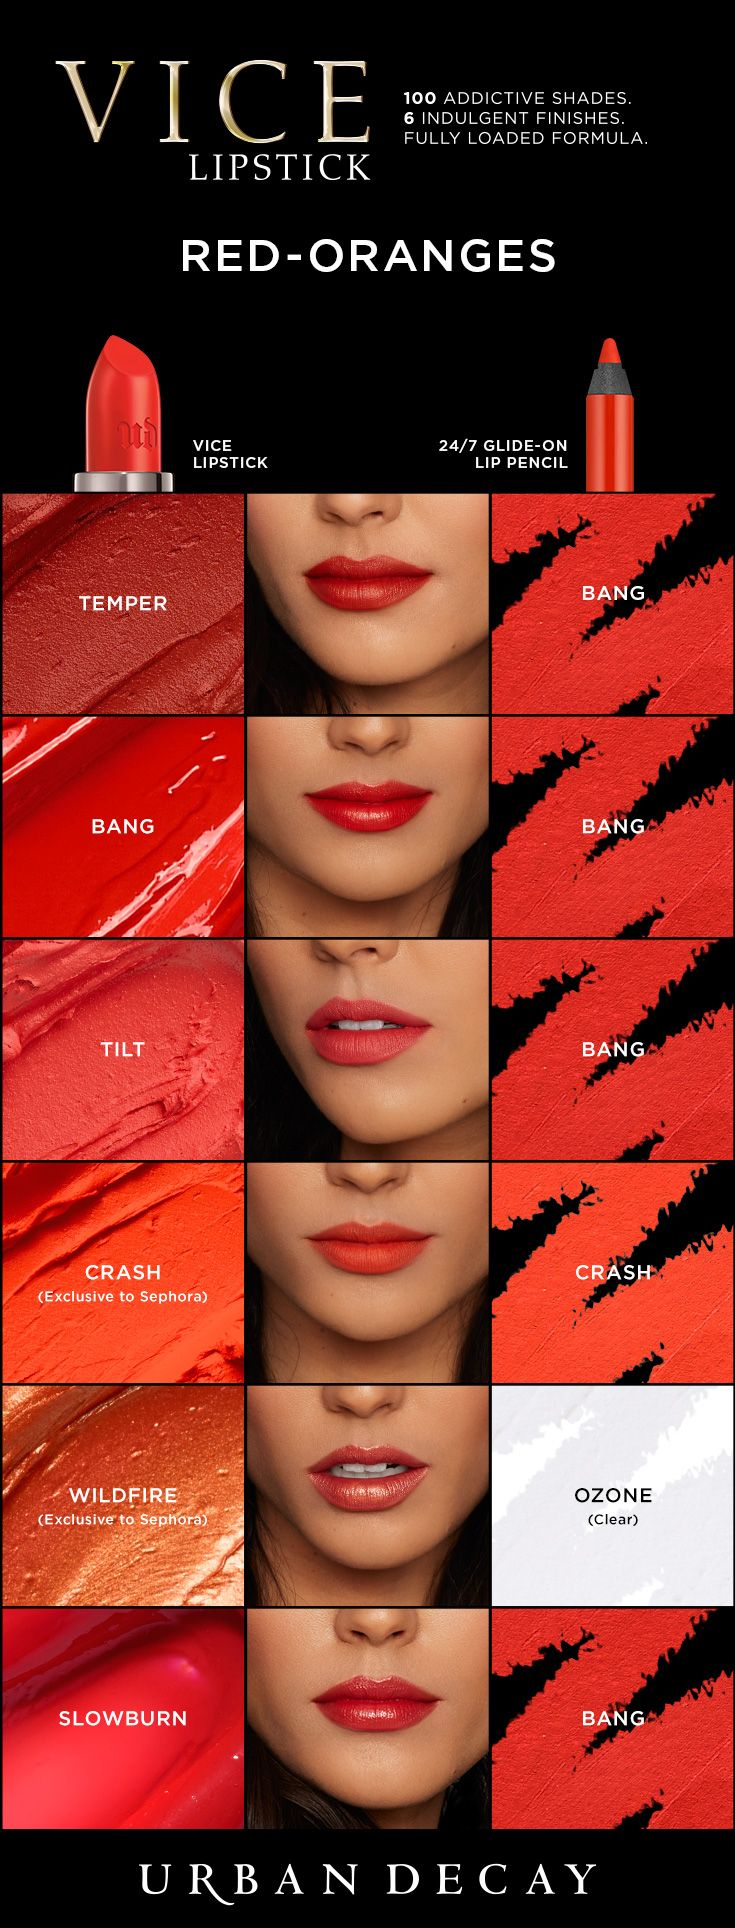 Put a little on that classic red lip! #LipstickIsMyVice